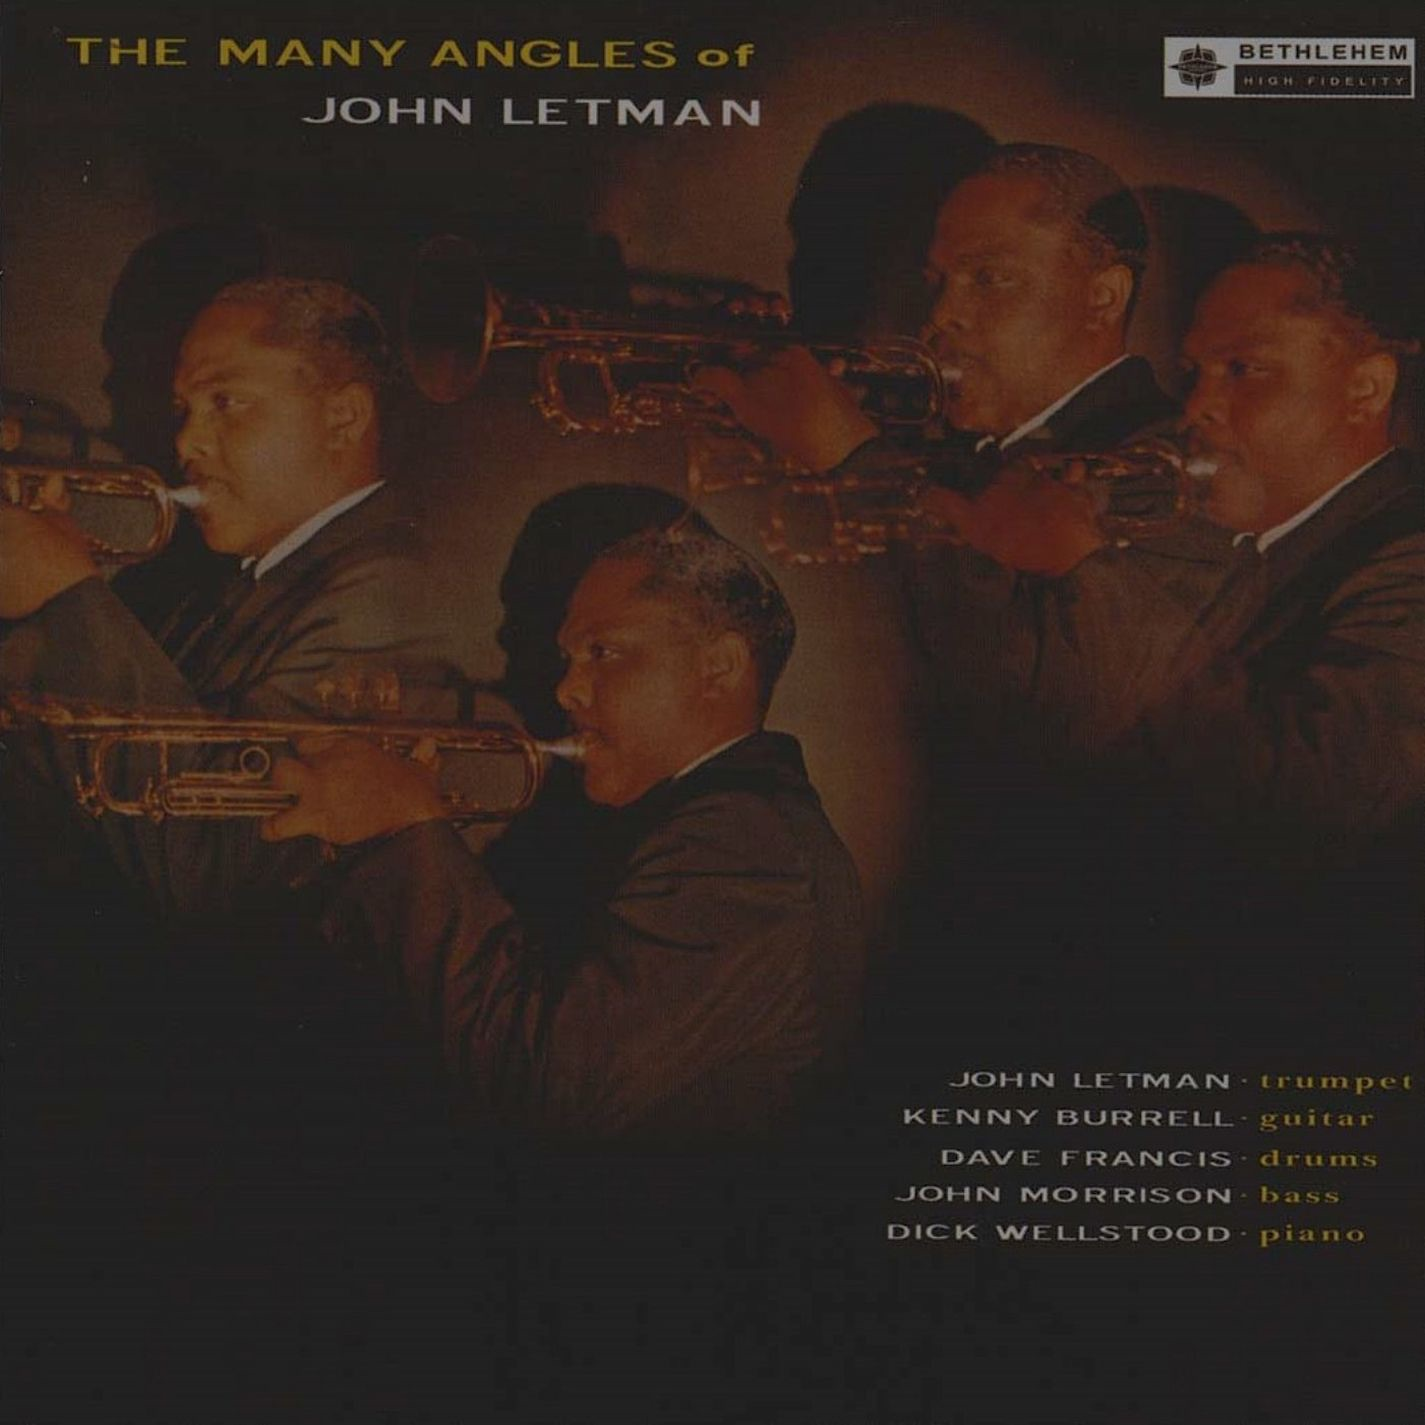 The Many Angles of John Letman (feat. Kenny Burrell, Dave Francis, John Morrison & Dick Wellstood) [2013 Remastered Version]